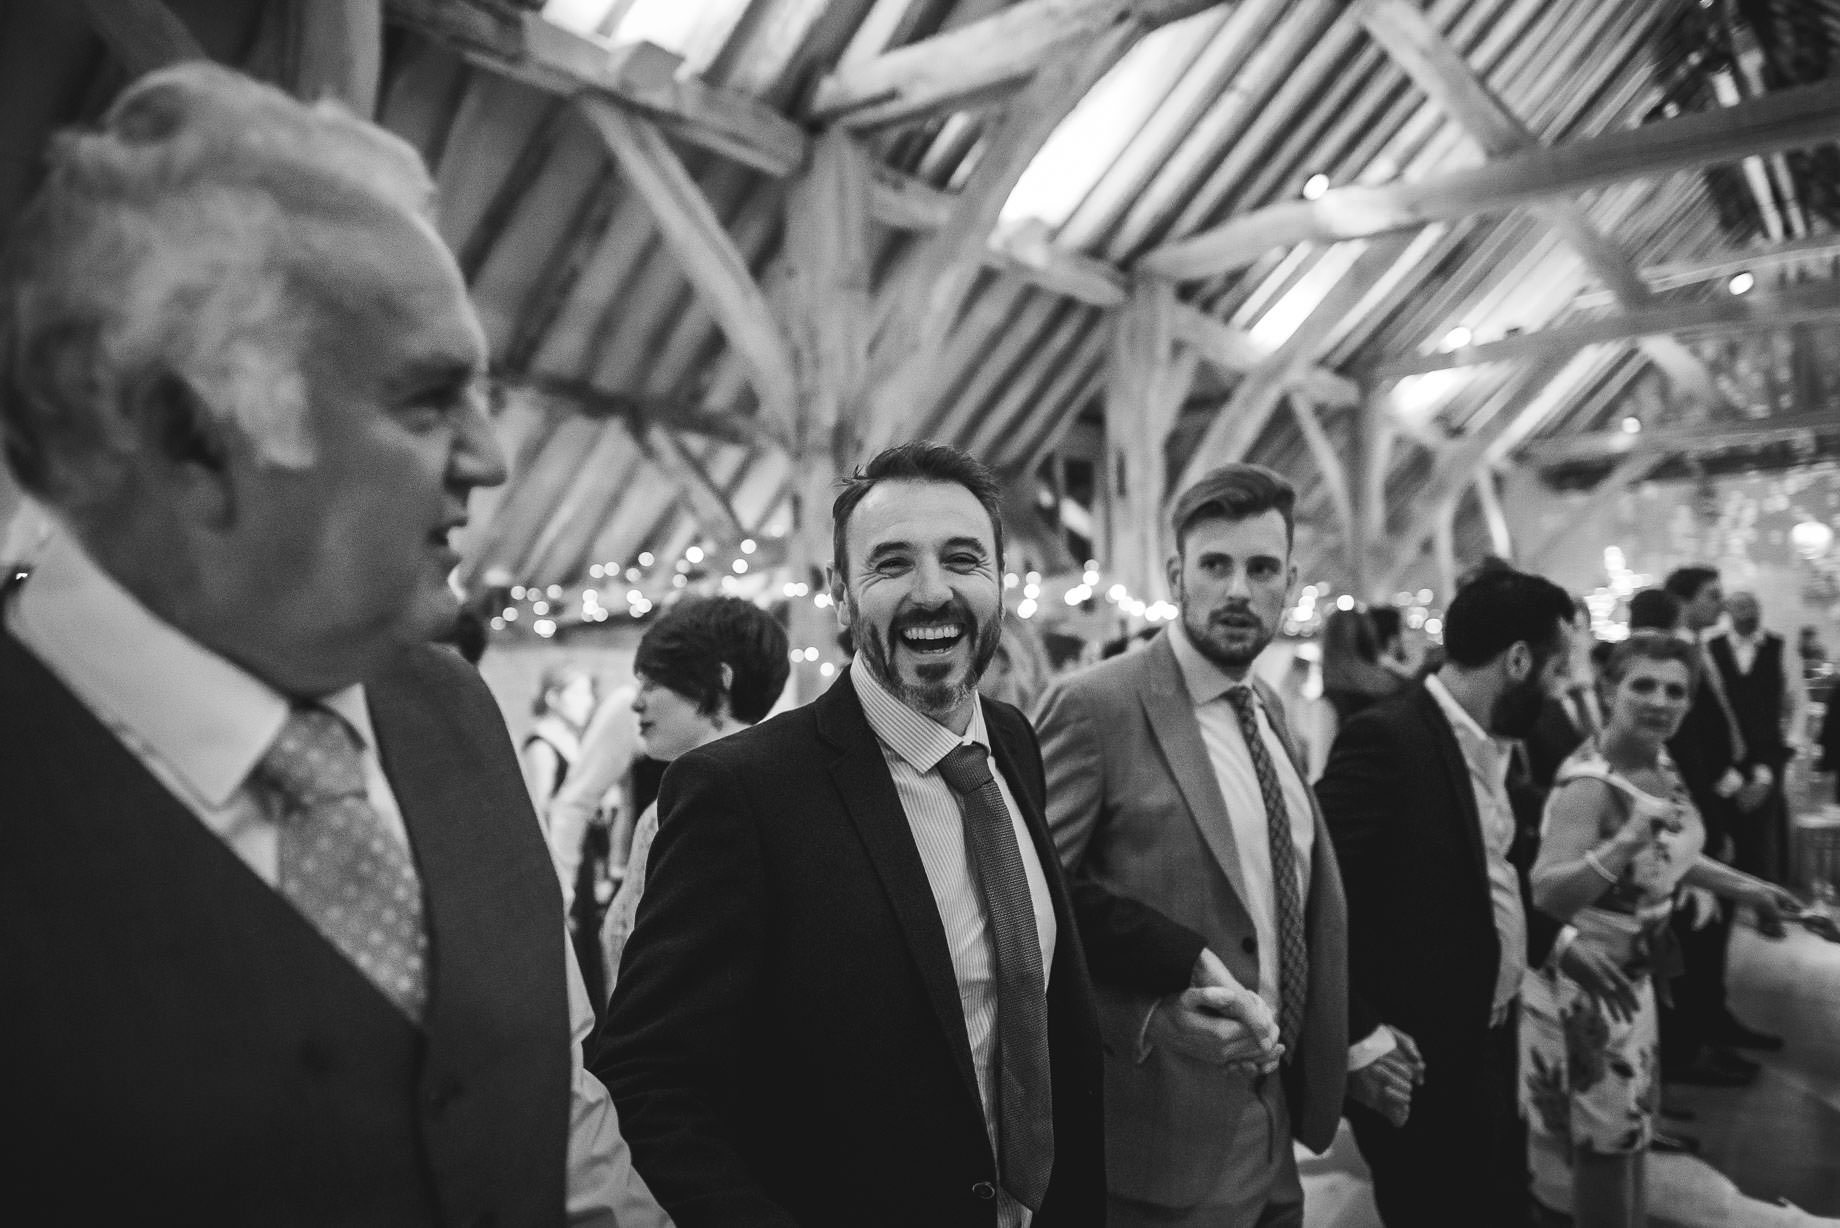 bury-court-barn-wedding-photography-guy-collier-photography-nadia-tom-176-of-184